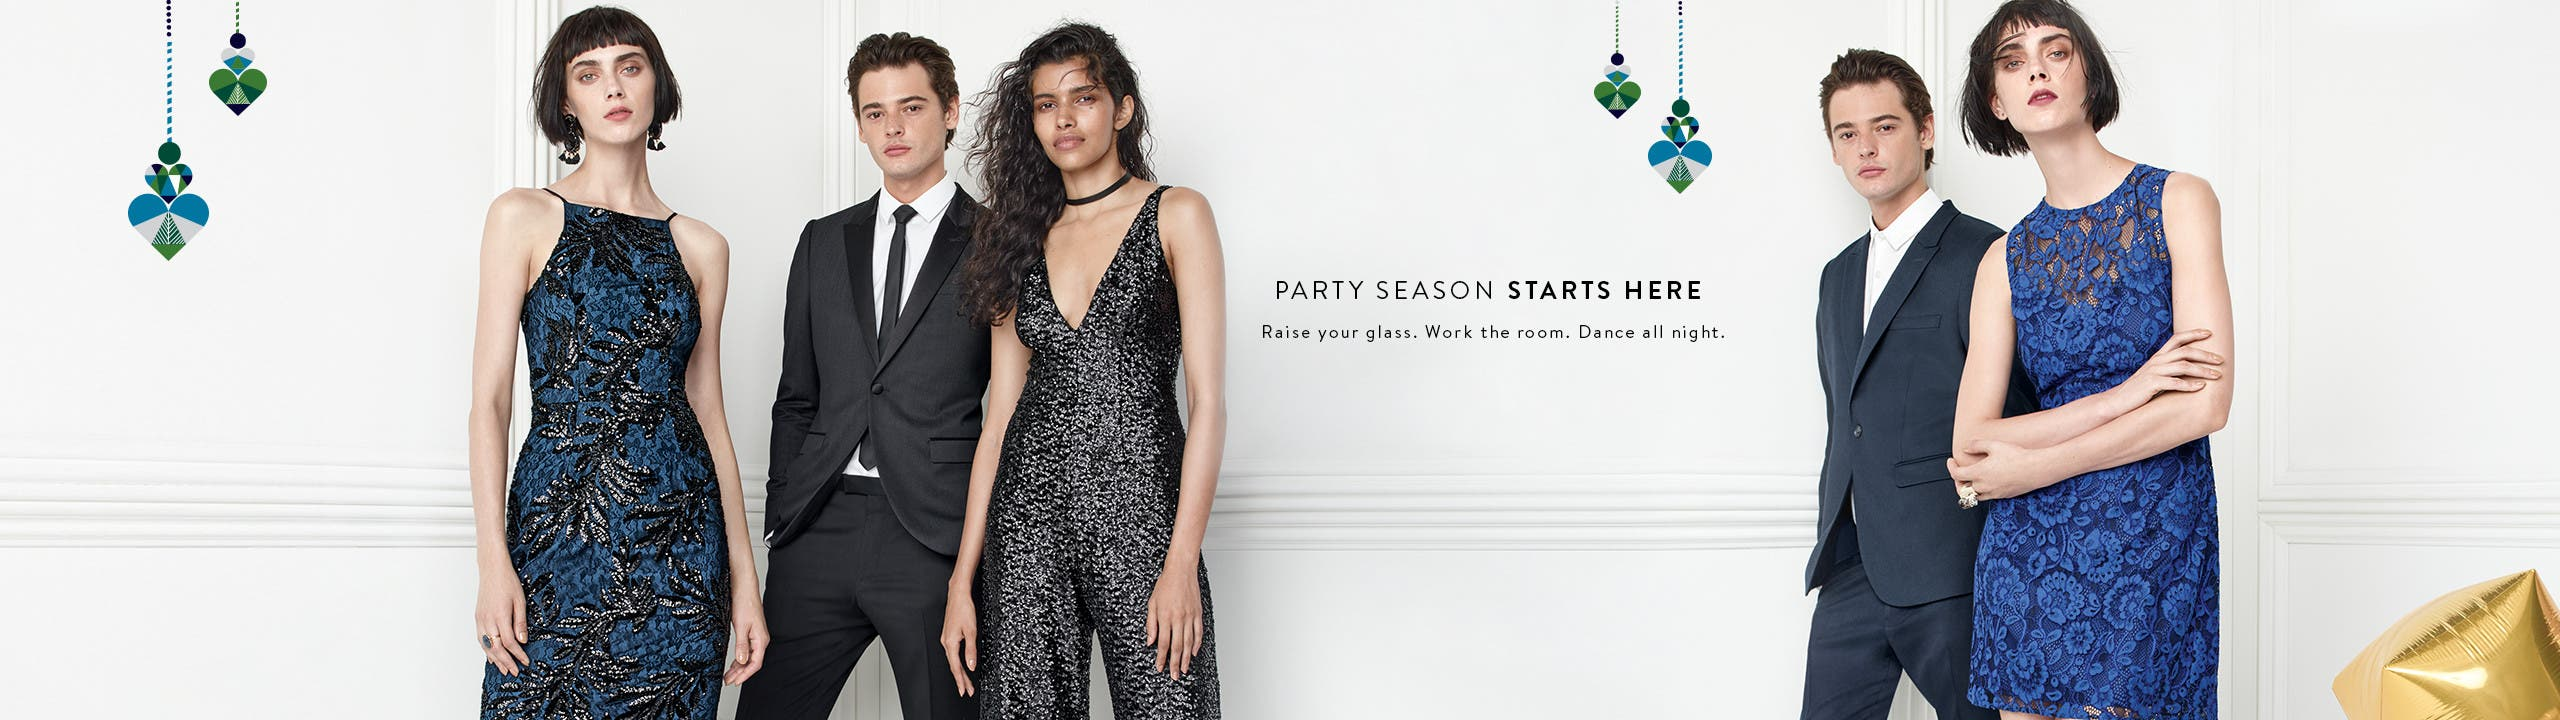 Party season starts here.